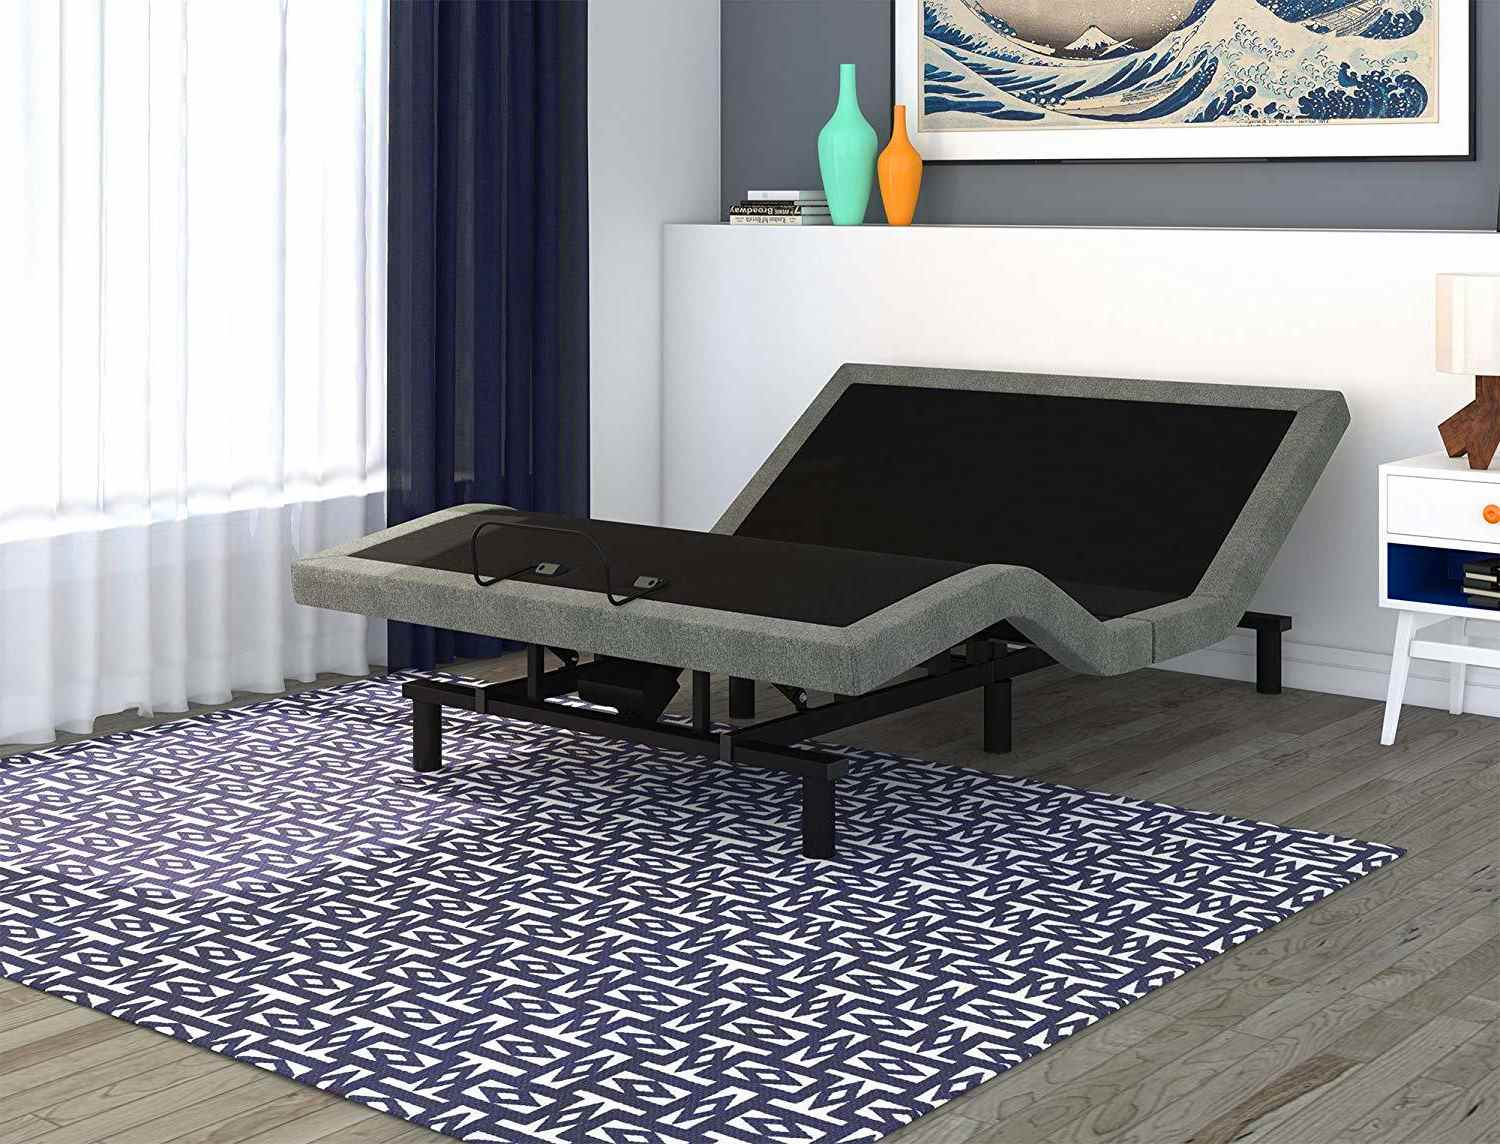 electric adjustable bed base for better sleeping